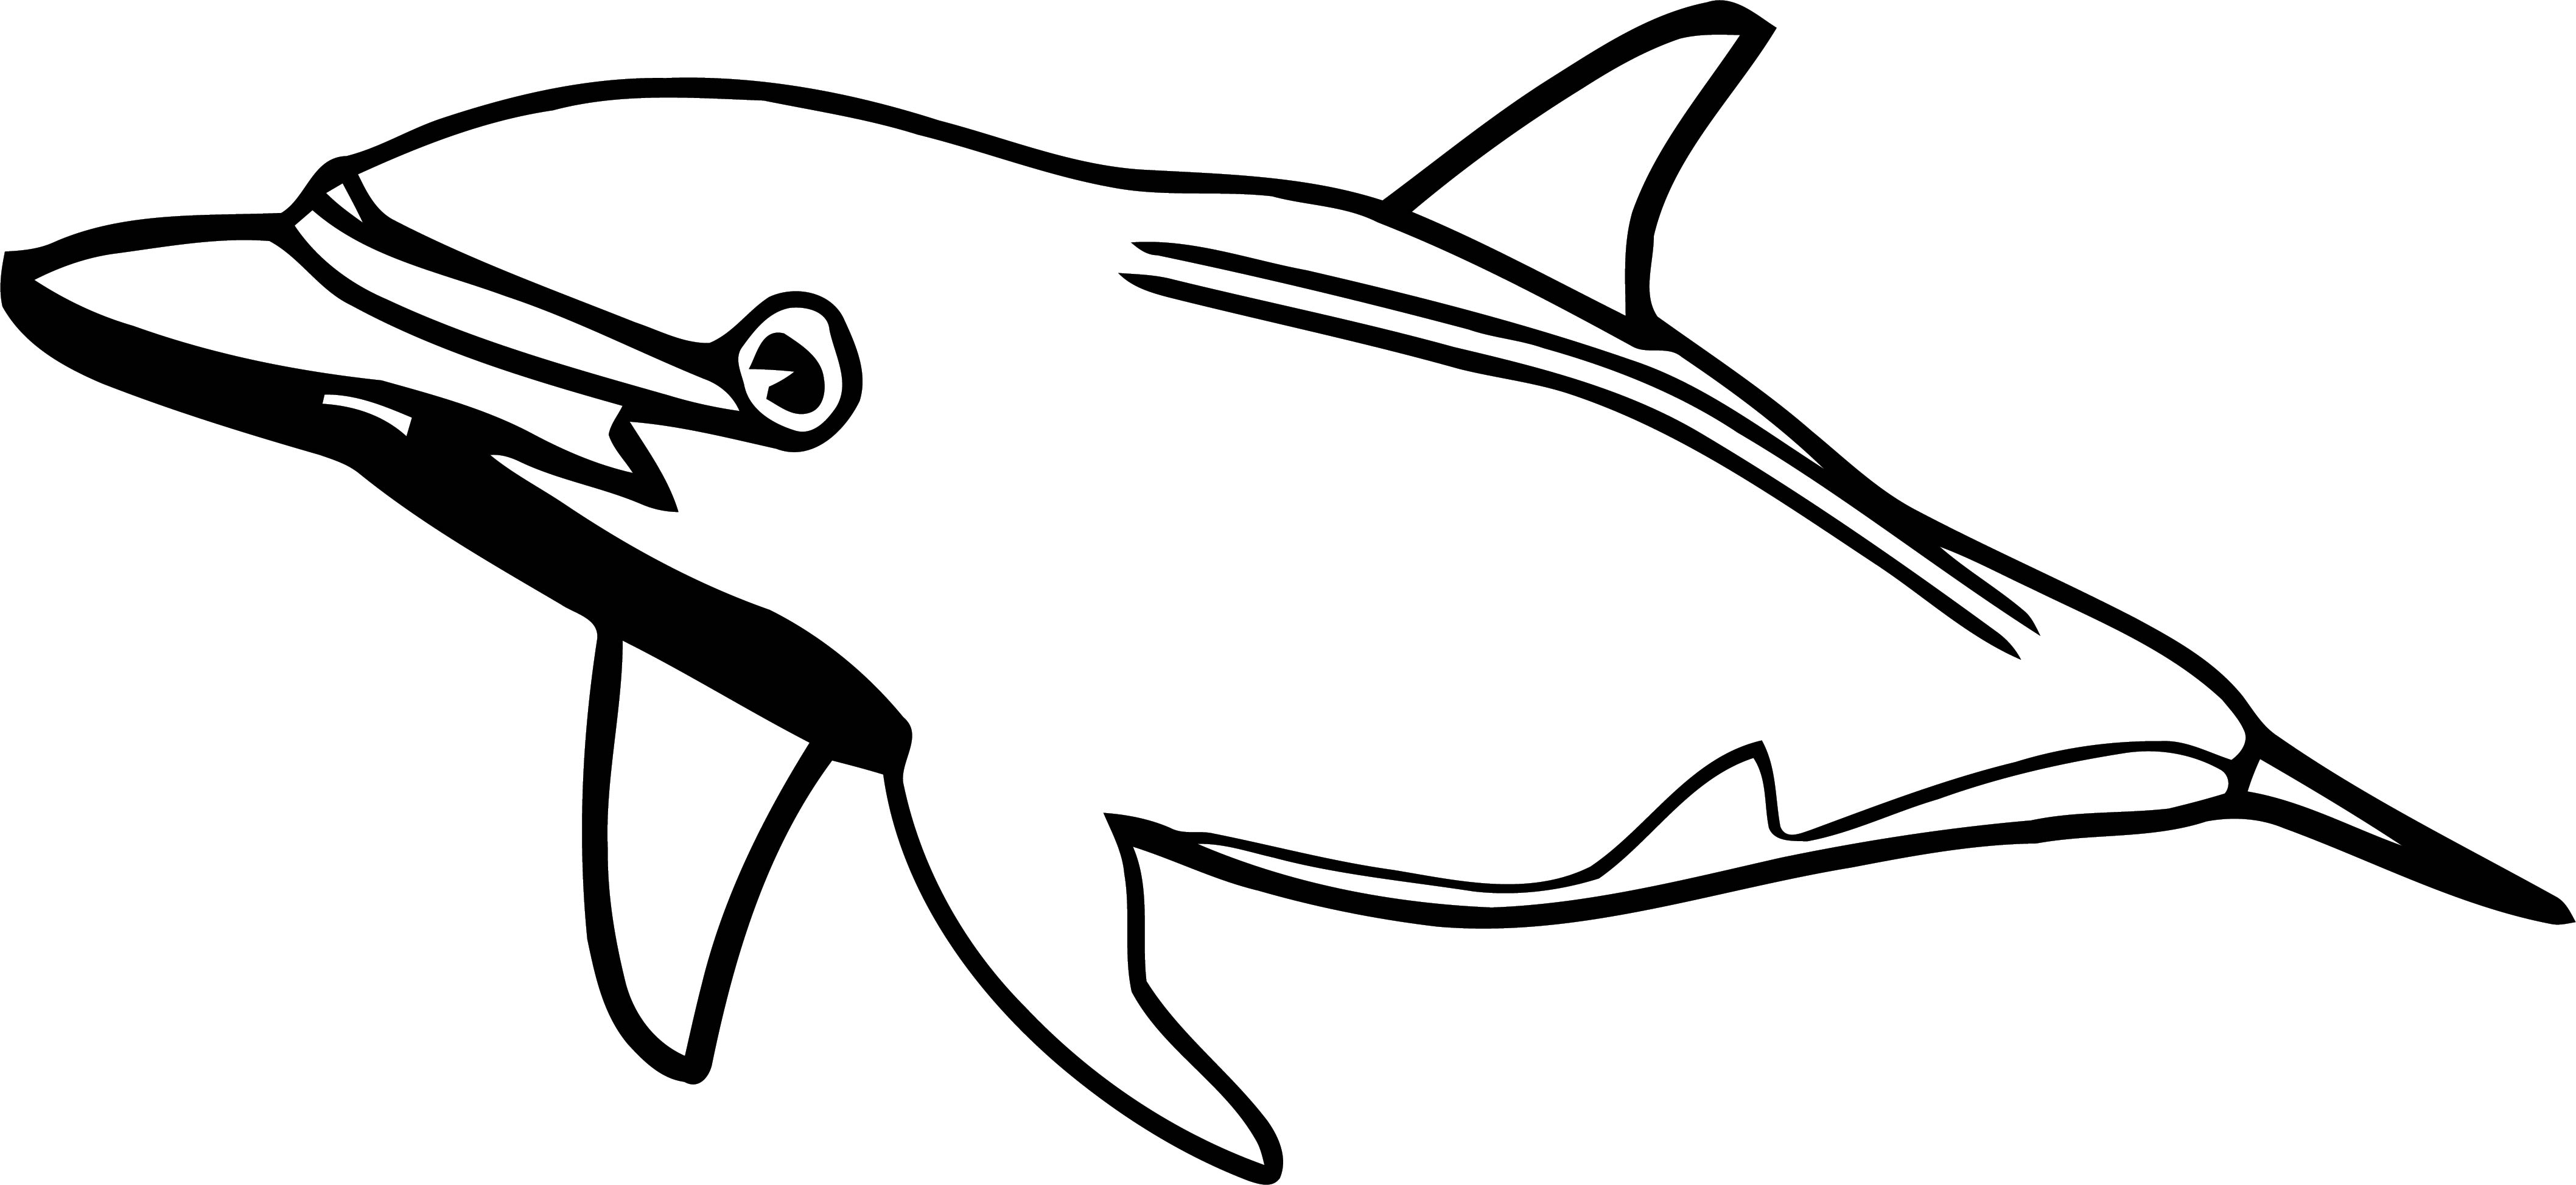 Dolphin Coloring Page 127 | Wecoloringpage.com